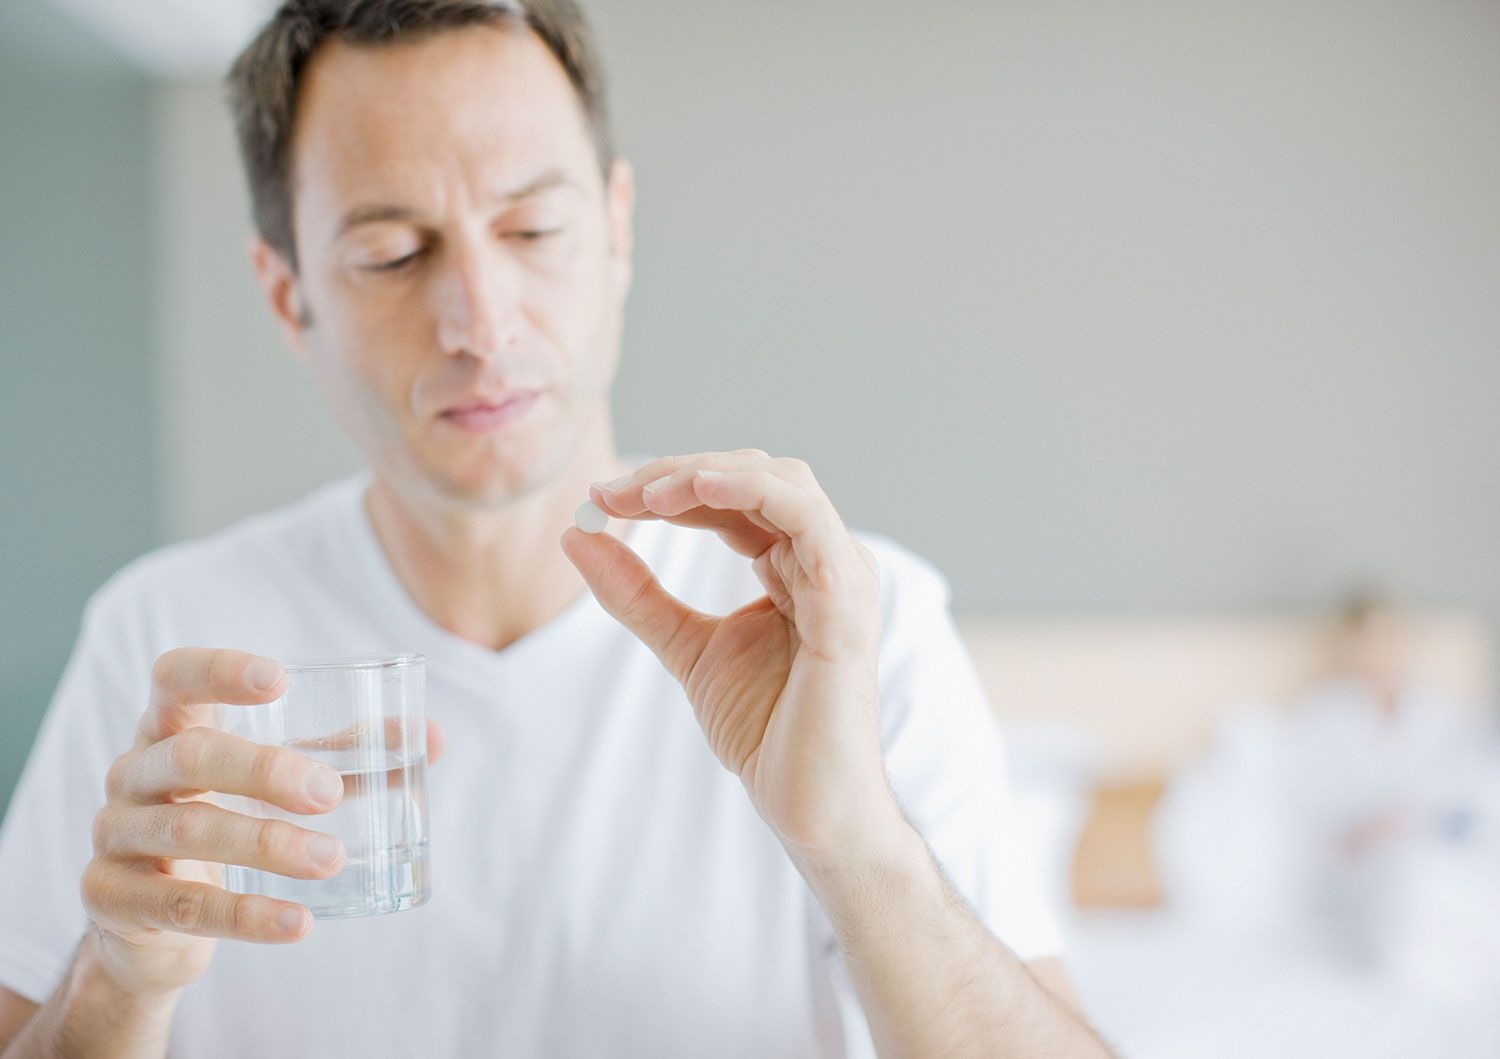 Man holding a glass of water examining a pill